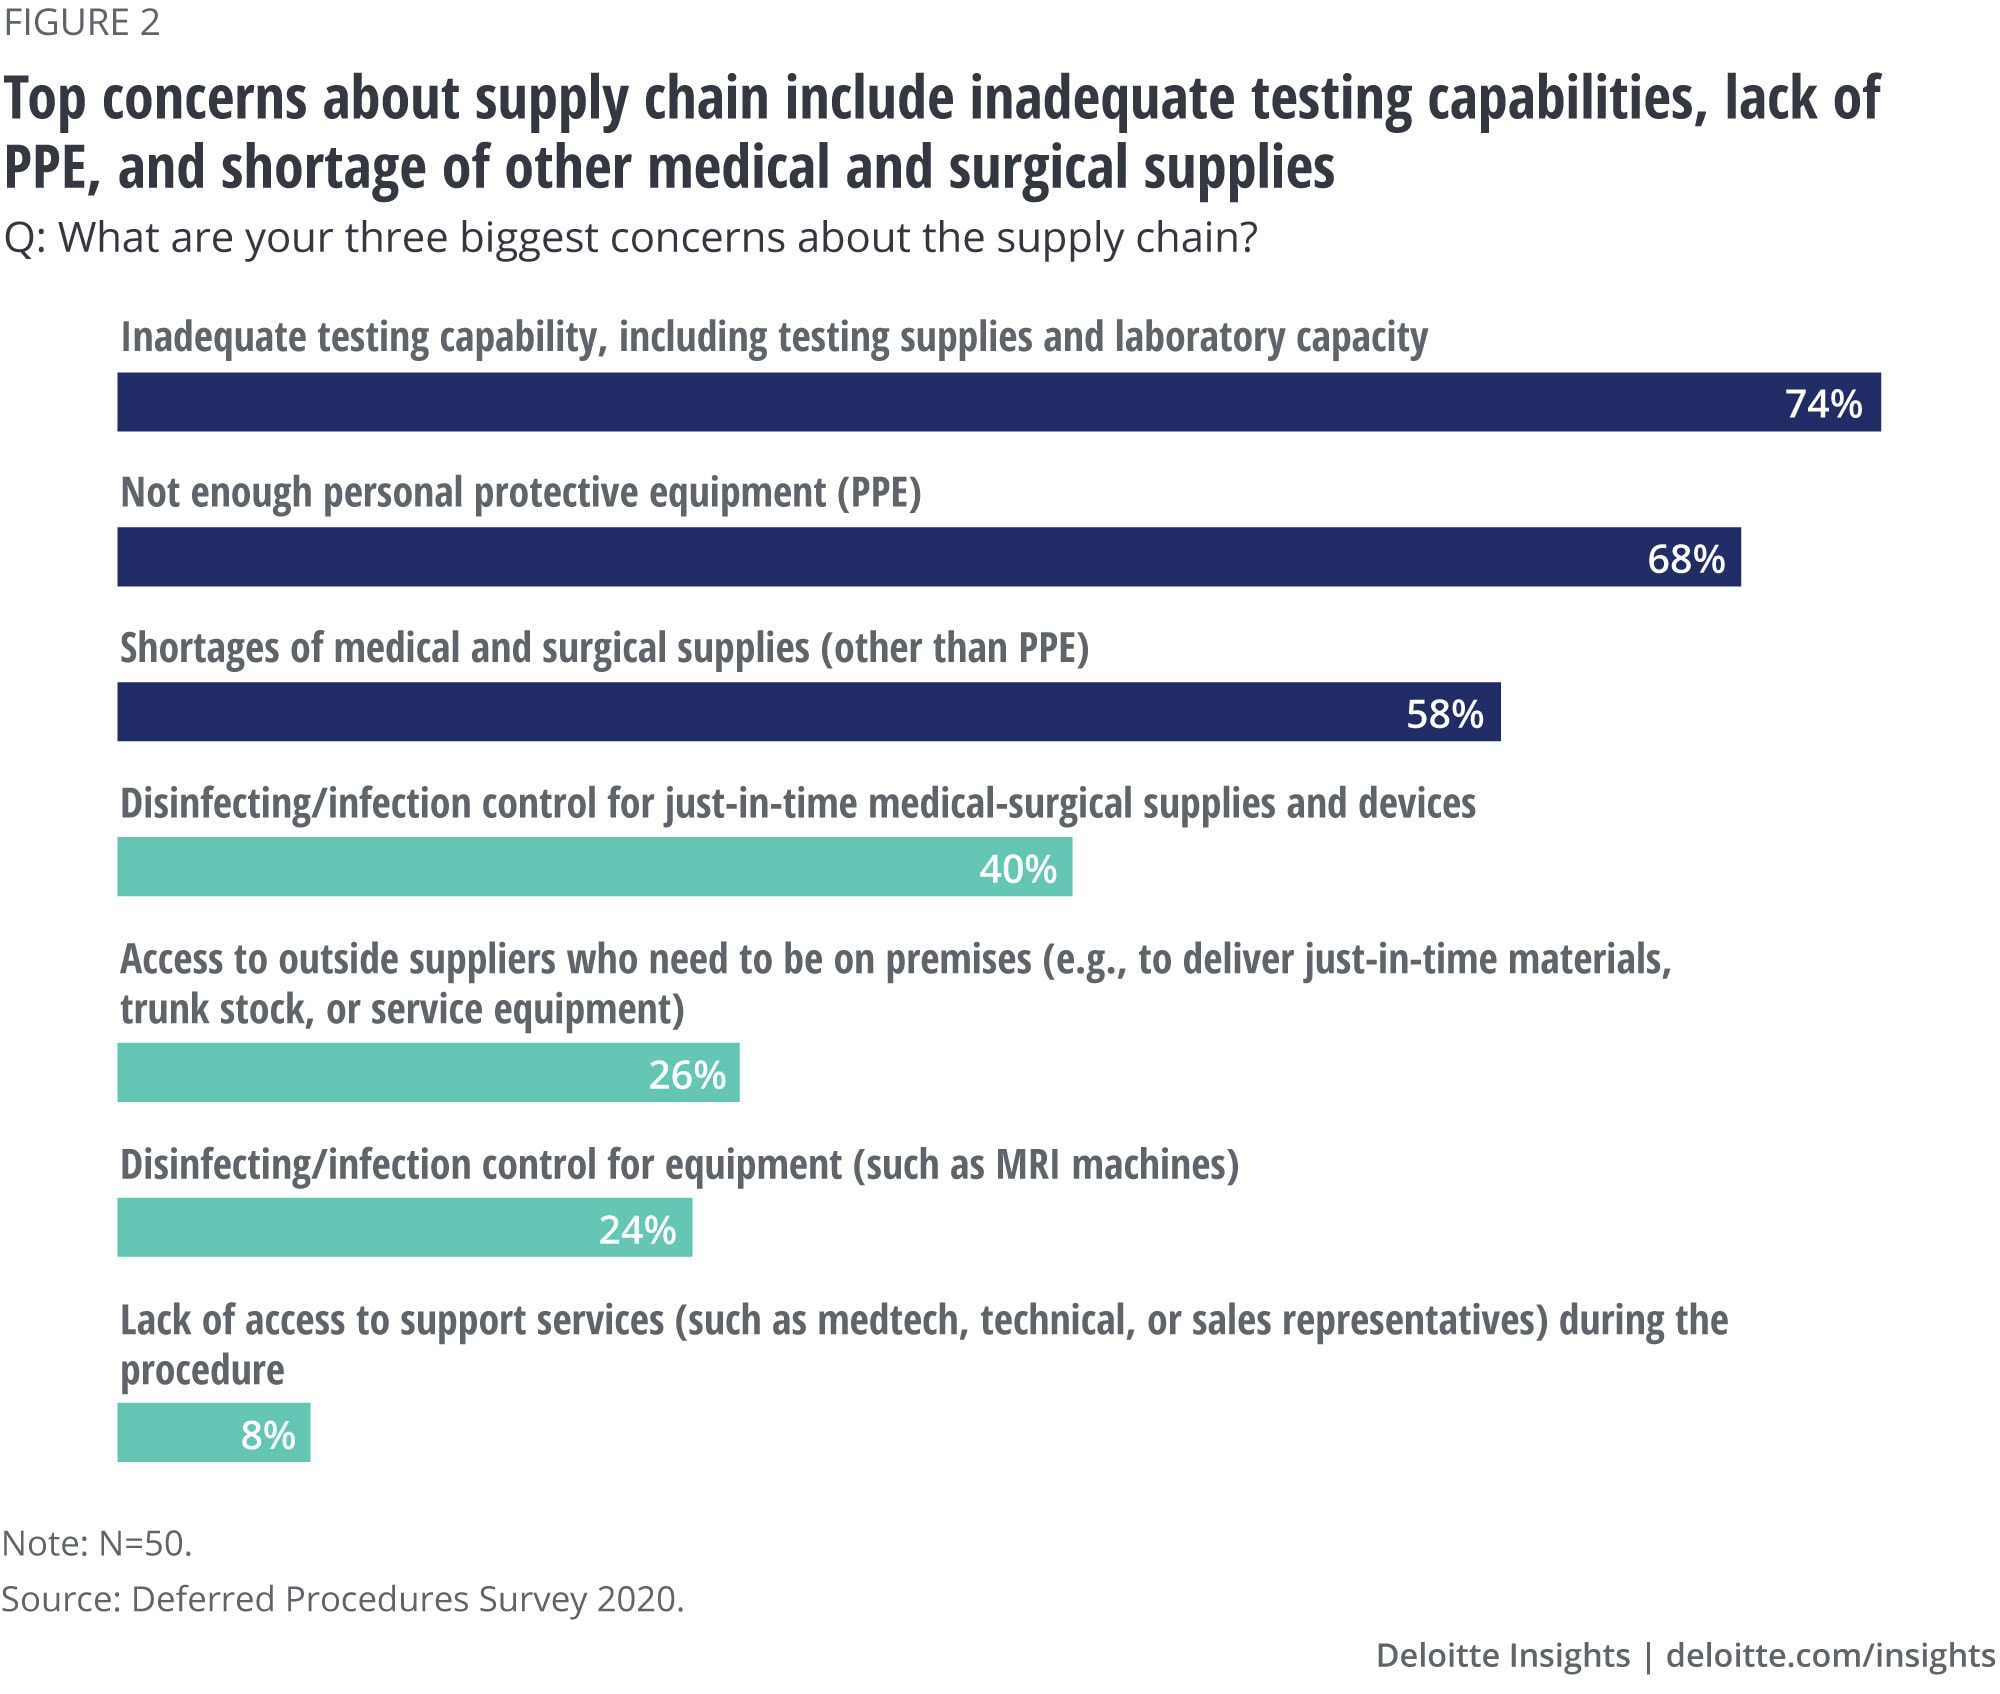 Top concerns about supply chain include inadequate testing capabilities, lack of PPE, and shortage of other medical and surgical supplies